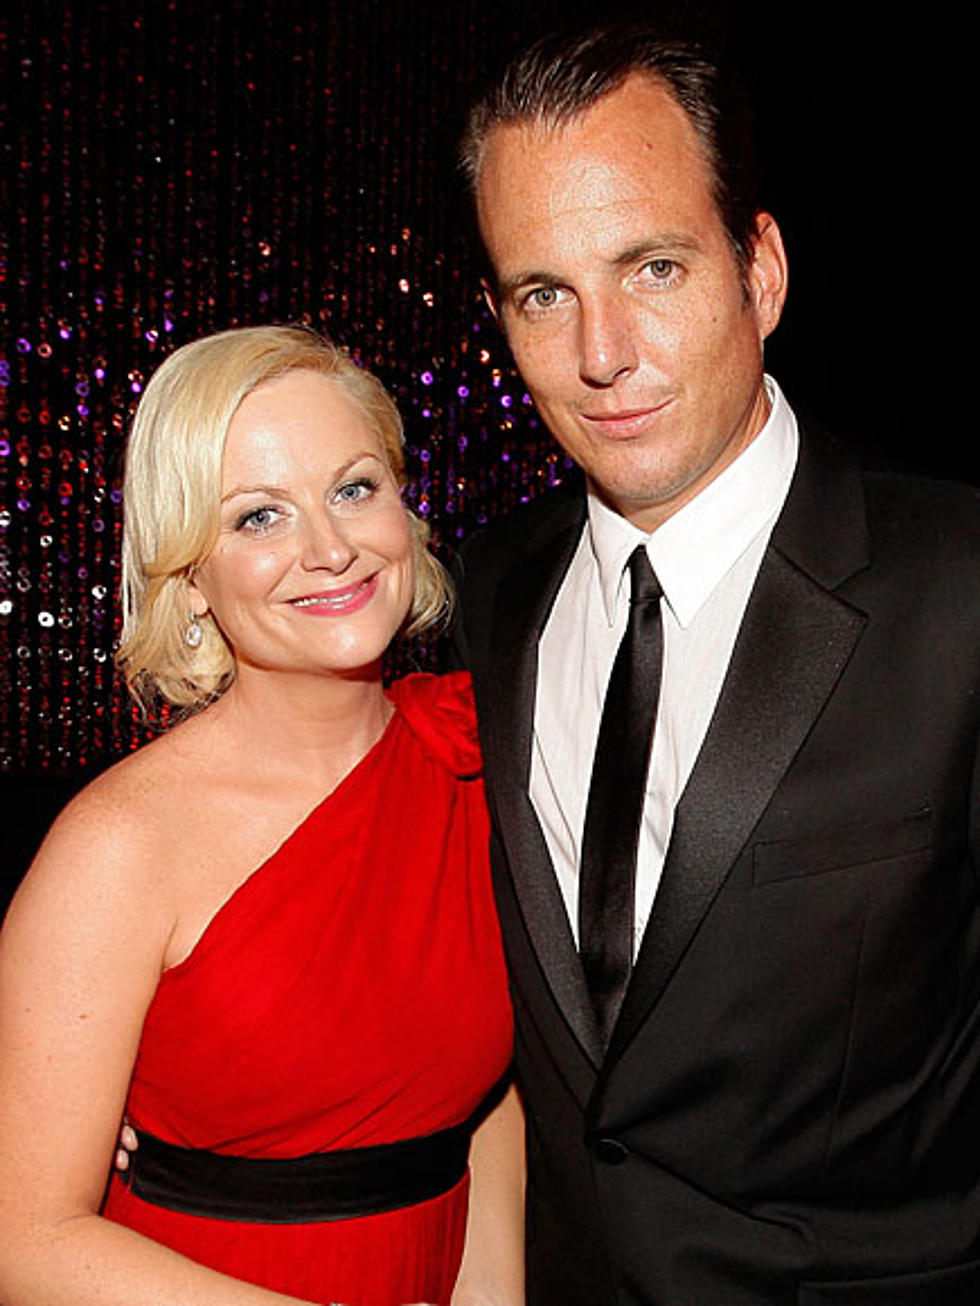 amy poehler dating nick cannon